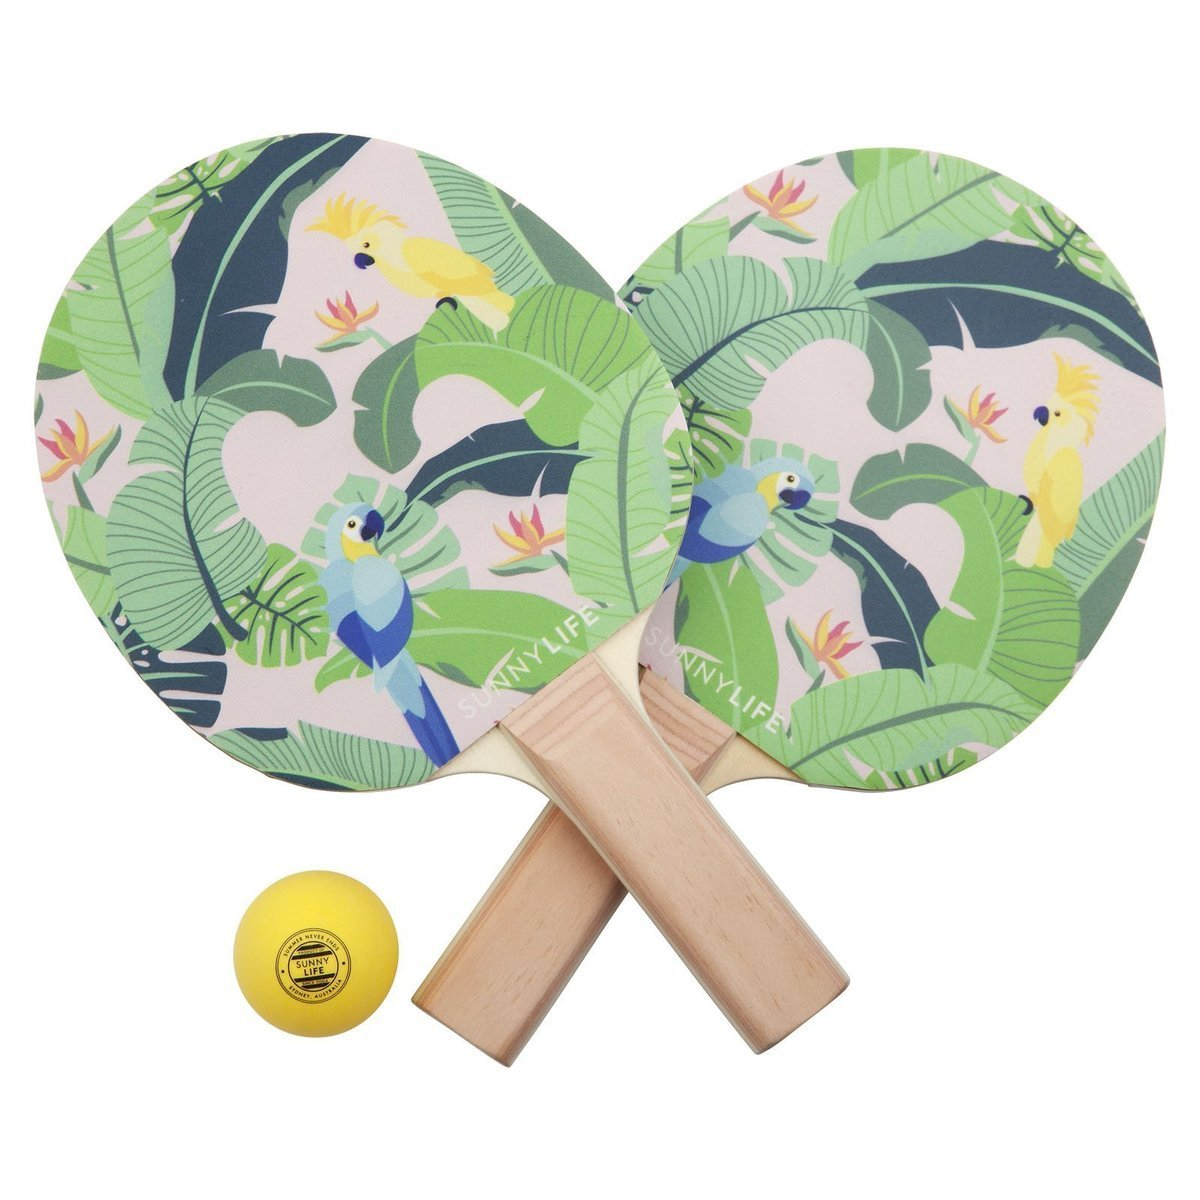 Sunnylife Ping Pong Play On